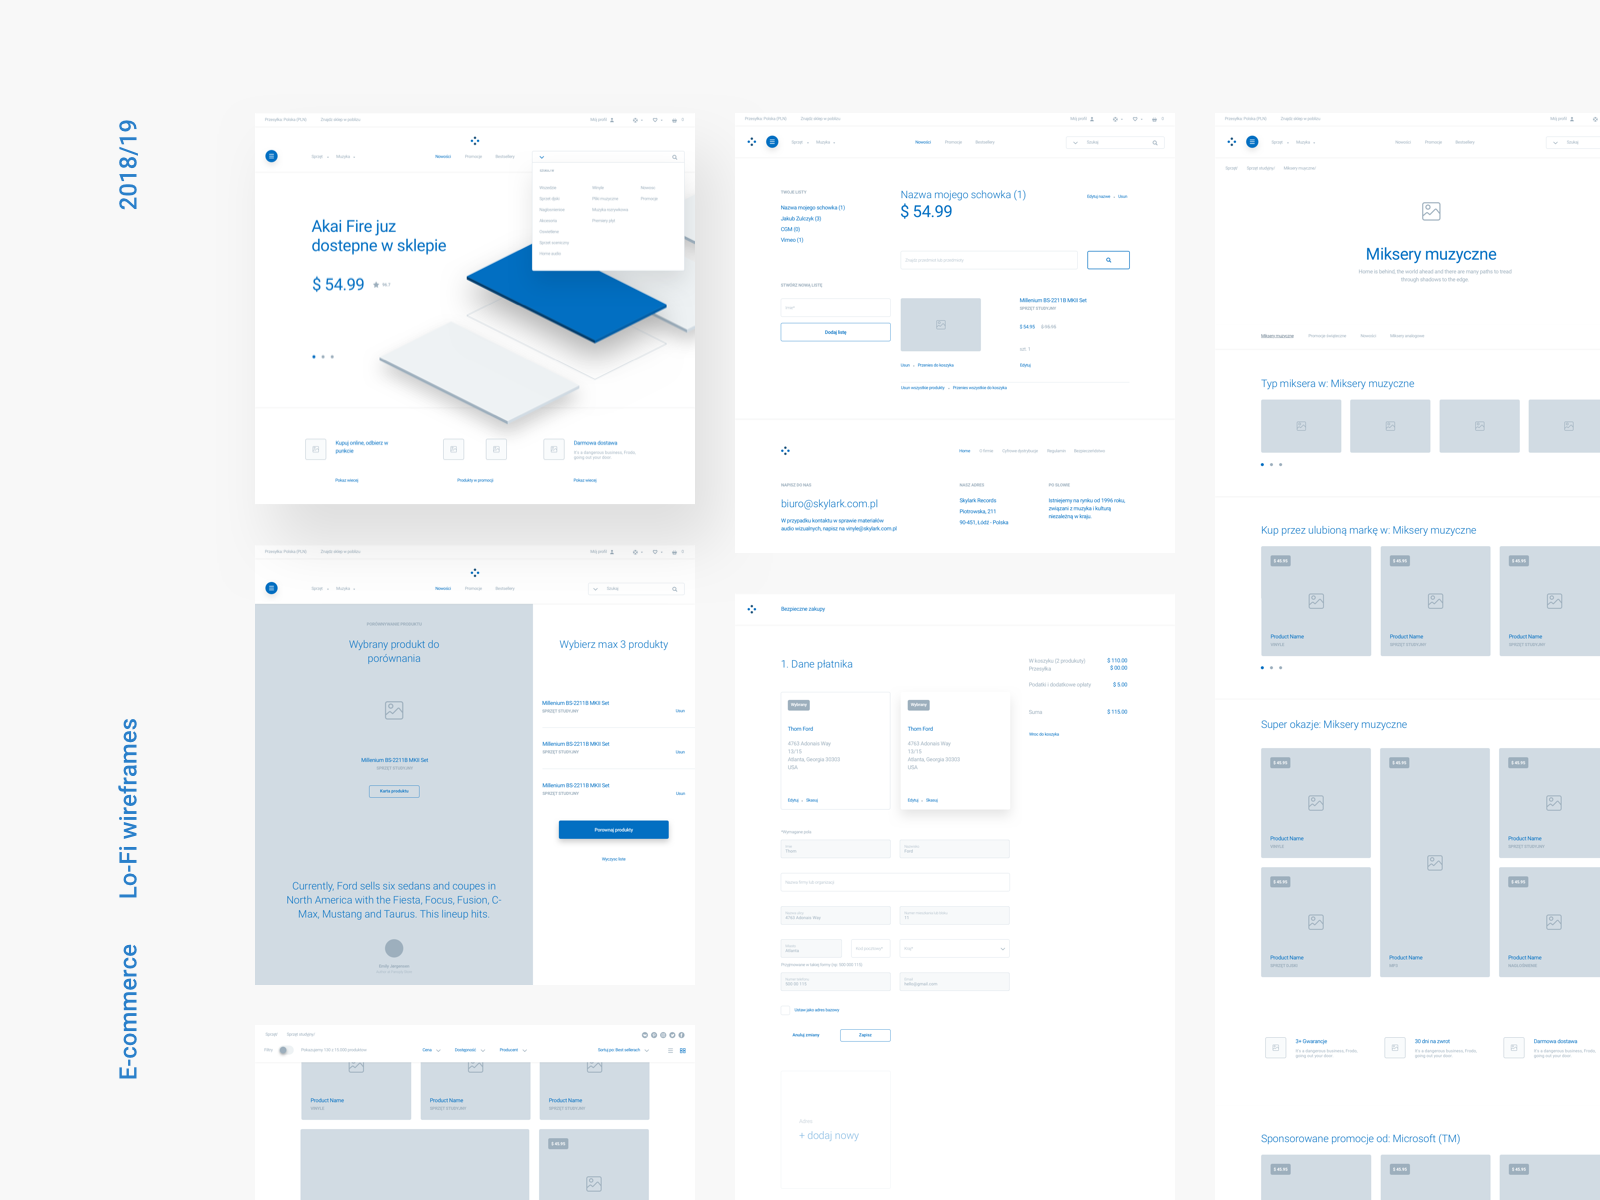 A medium fidelity wireframe example of a landing page for Piotr Kaźmierczak's eCommerce website.